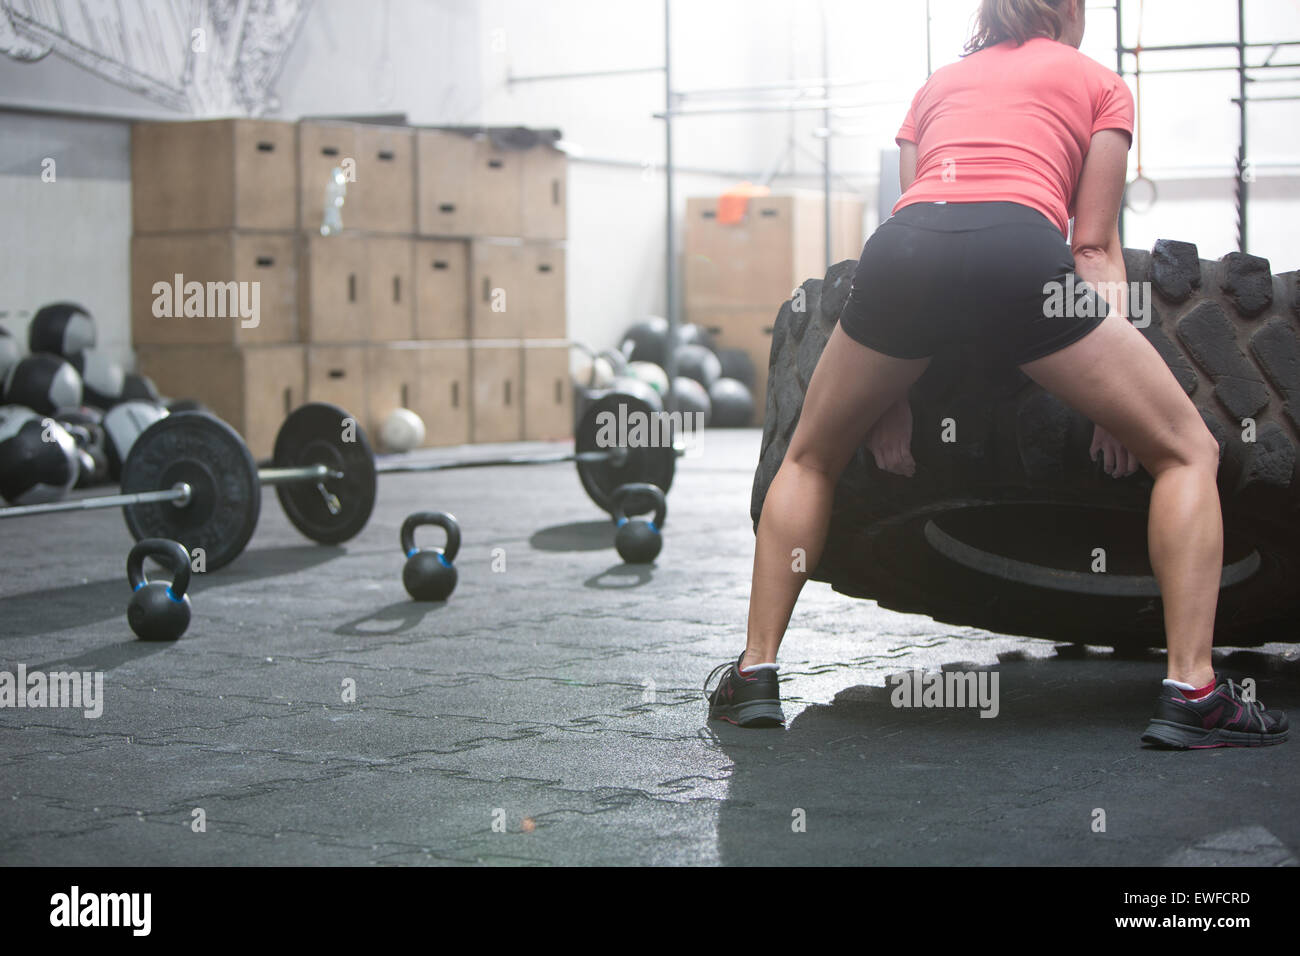 Rear view of woman flipping tire in crossfit gym - Stock Image